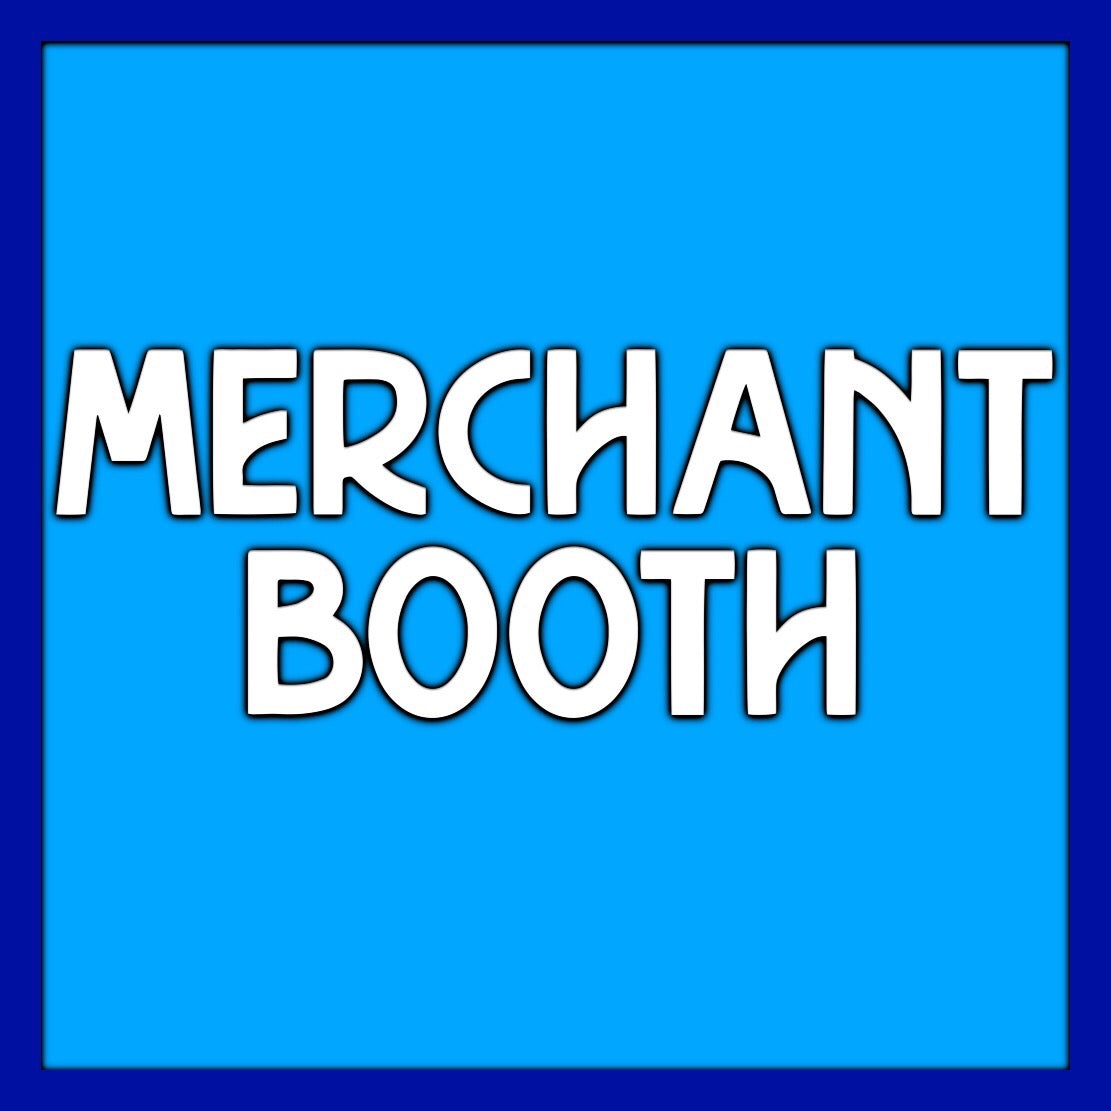 Merchant Booth (O'ahu Aug 2020)